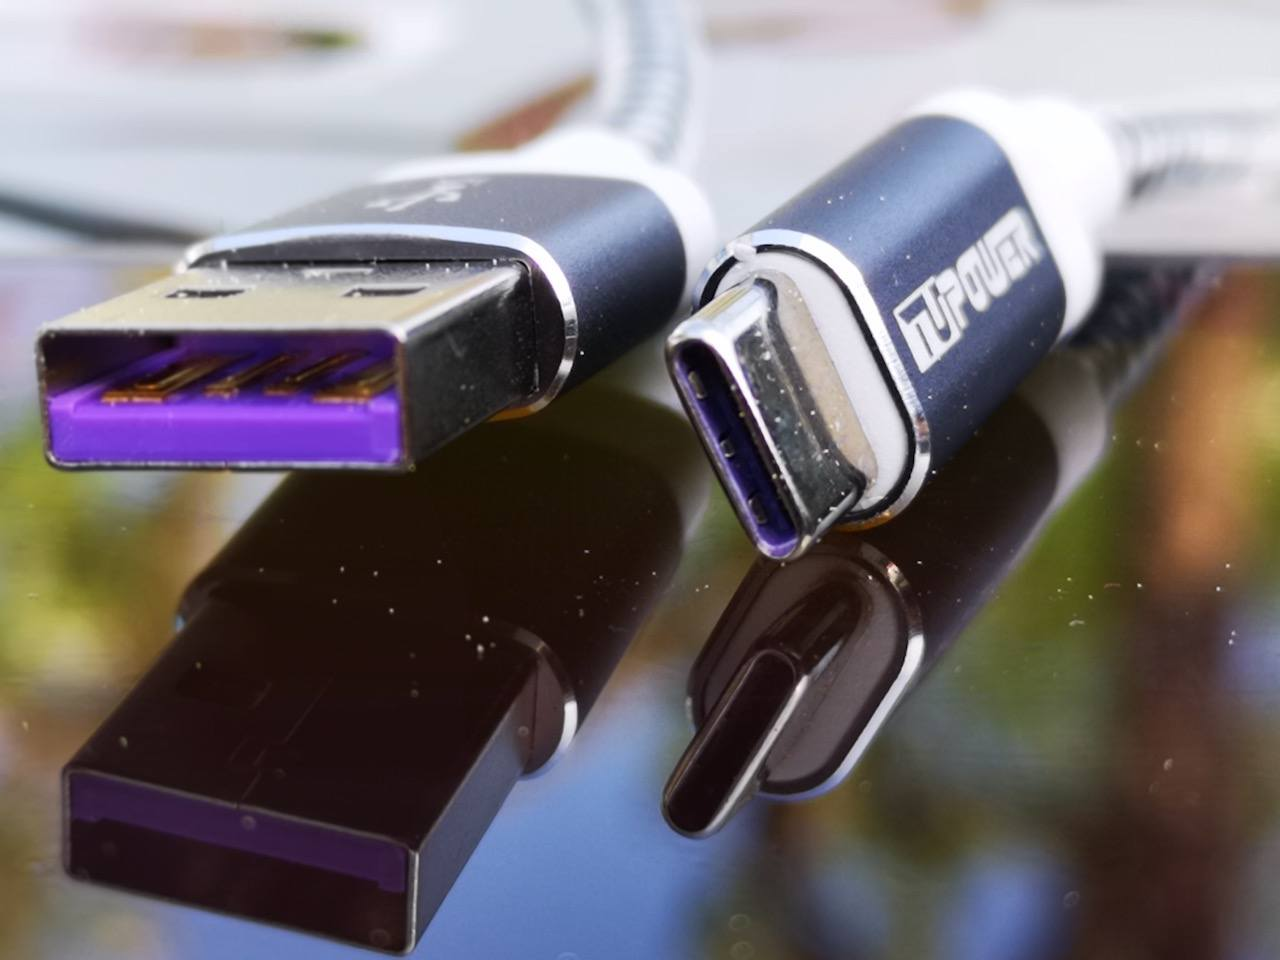 Huawei_honor_usb_c_Ladekabel_schnelles_laden_supercharge_quickcharge2